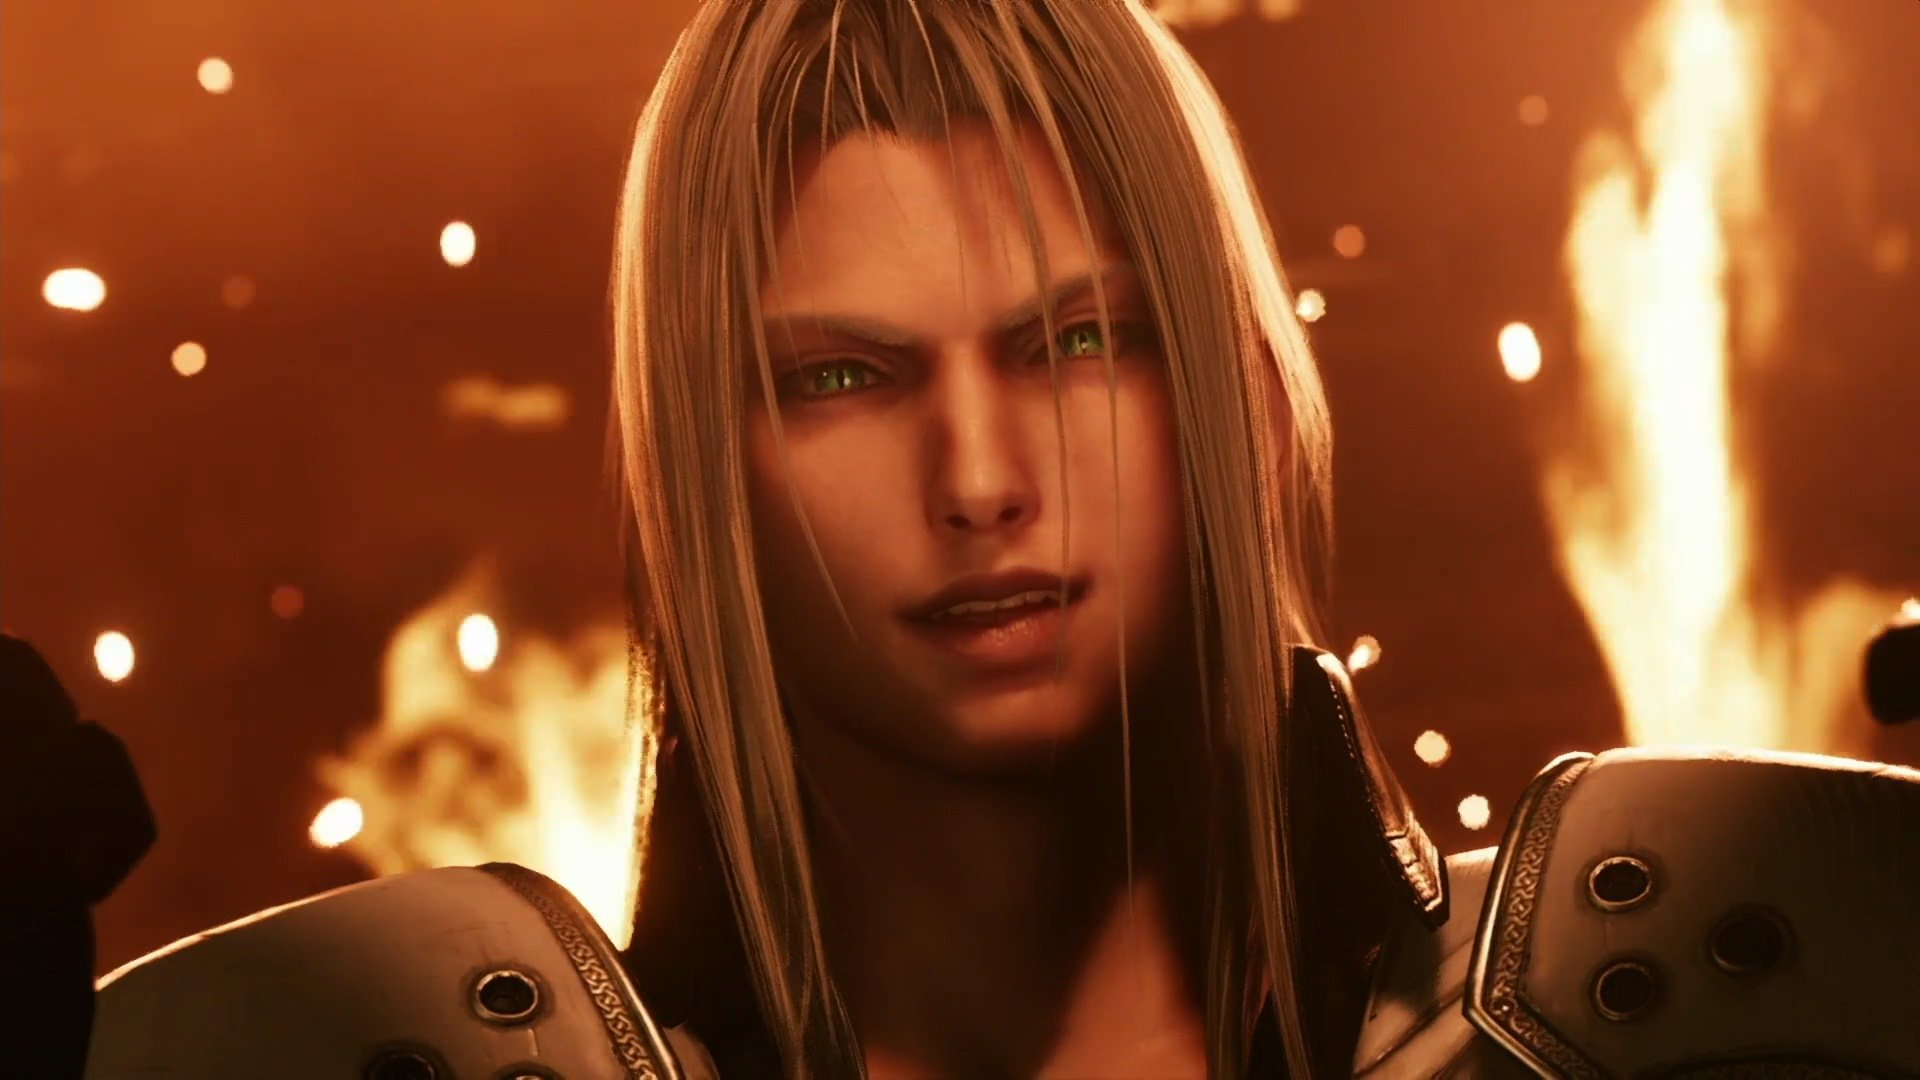 Final Fantasy Vii Remake S First Installment Sounds Likely